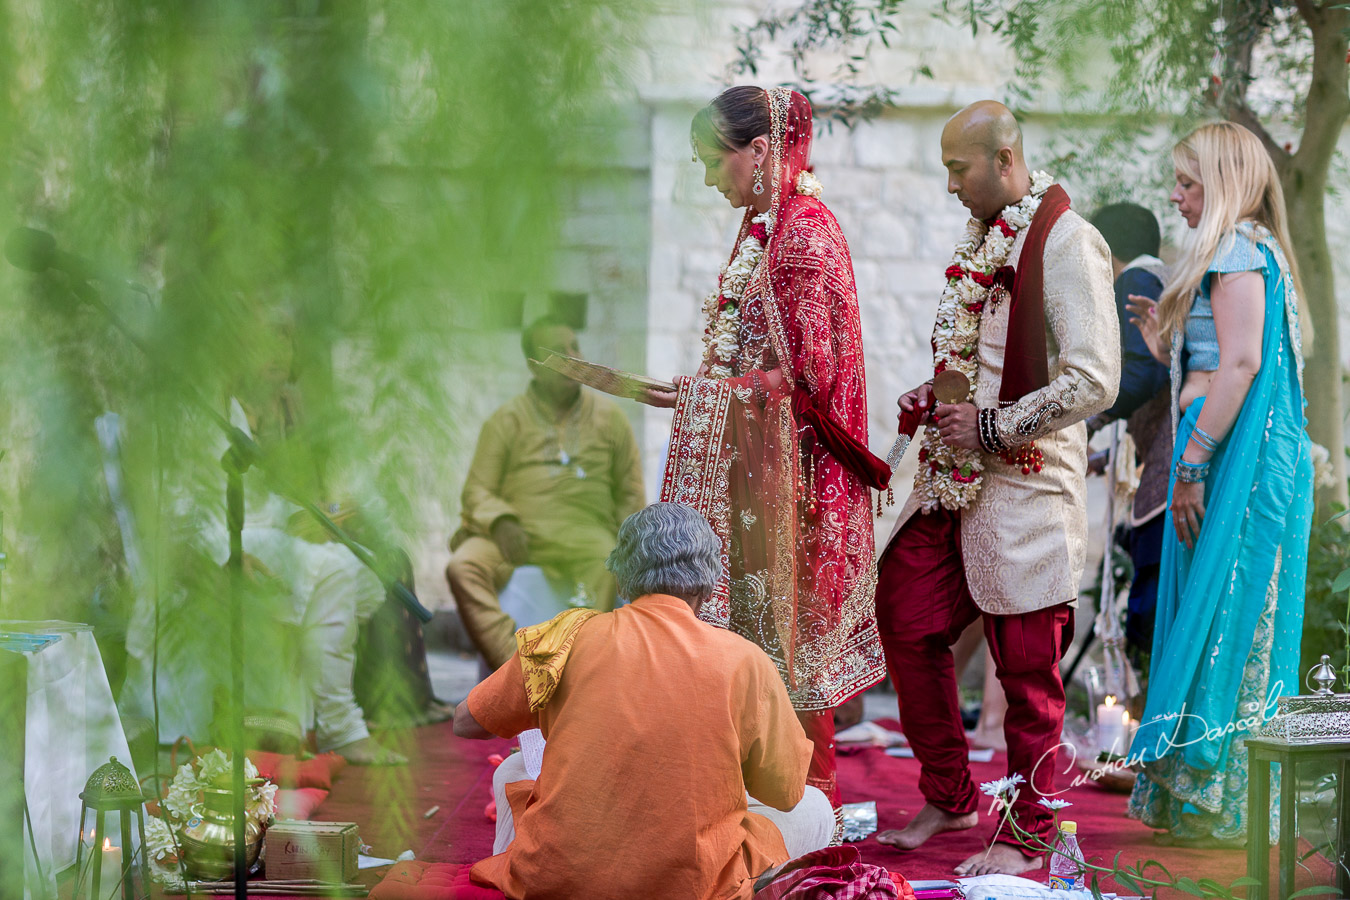 Hindu Wedding at Ayii Anargyri - 140